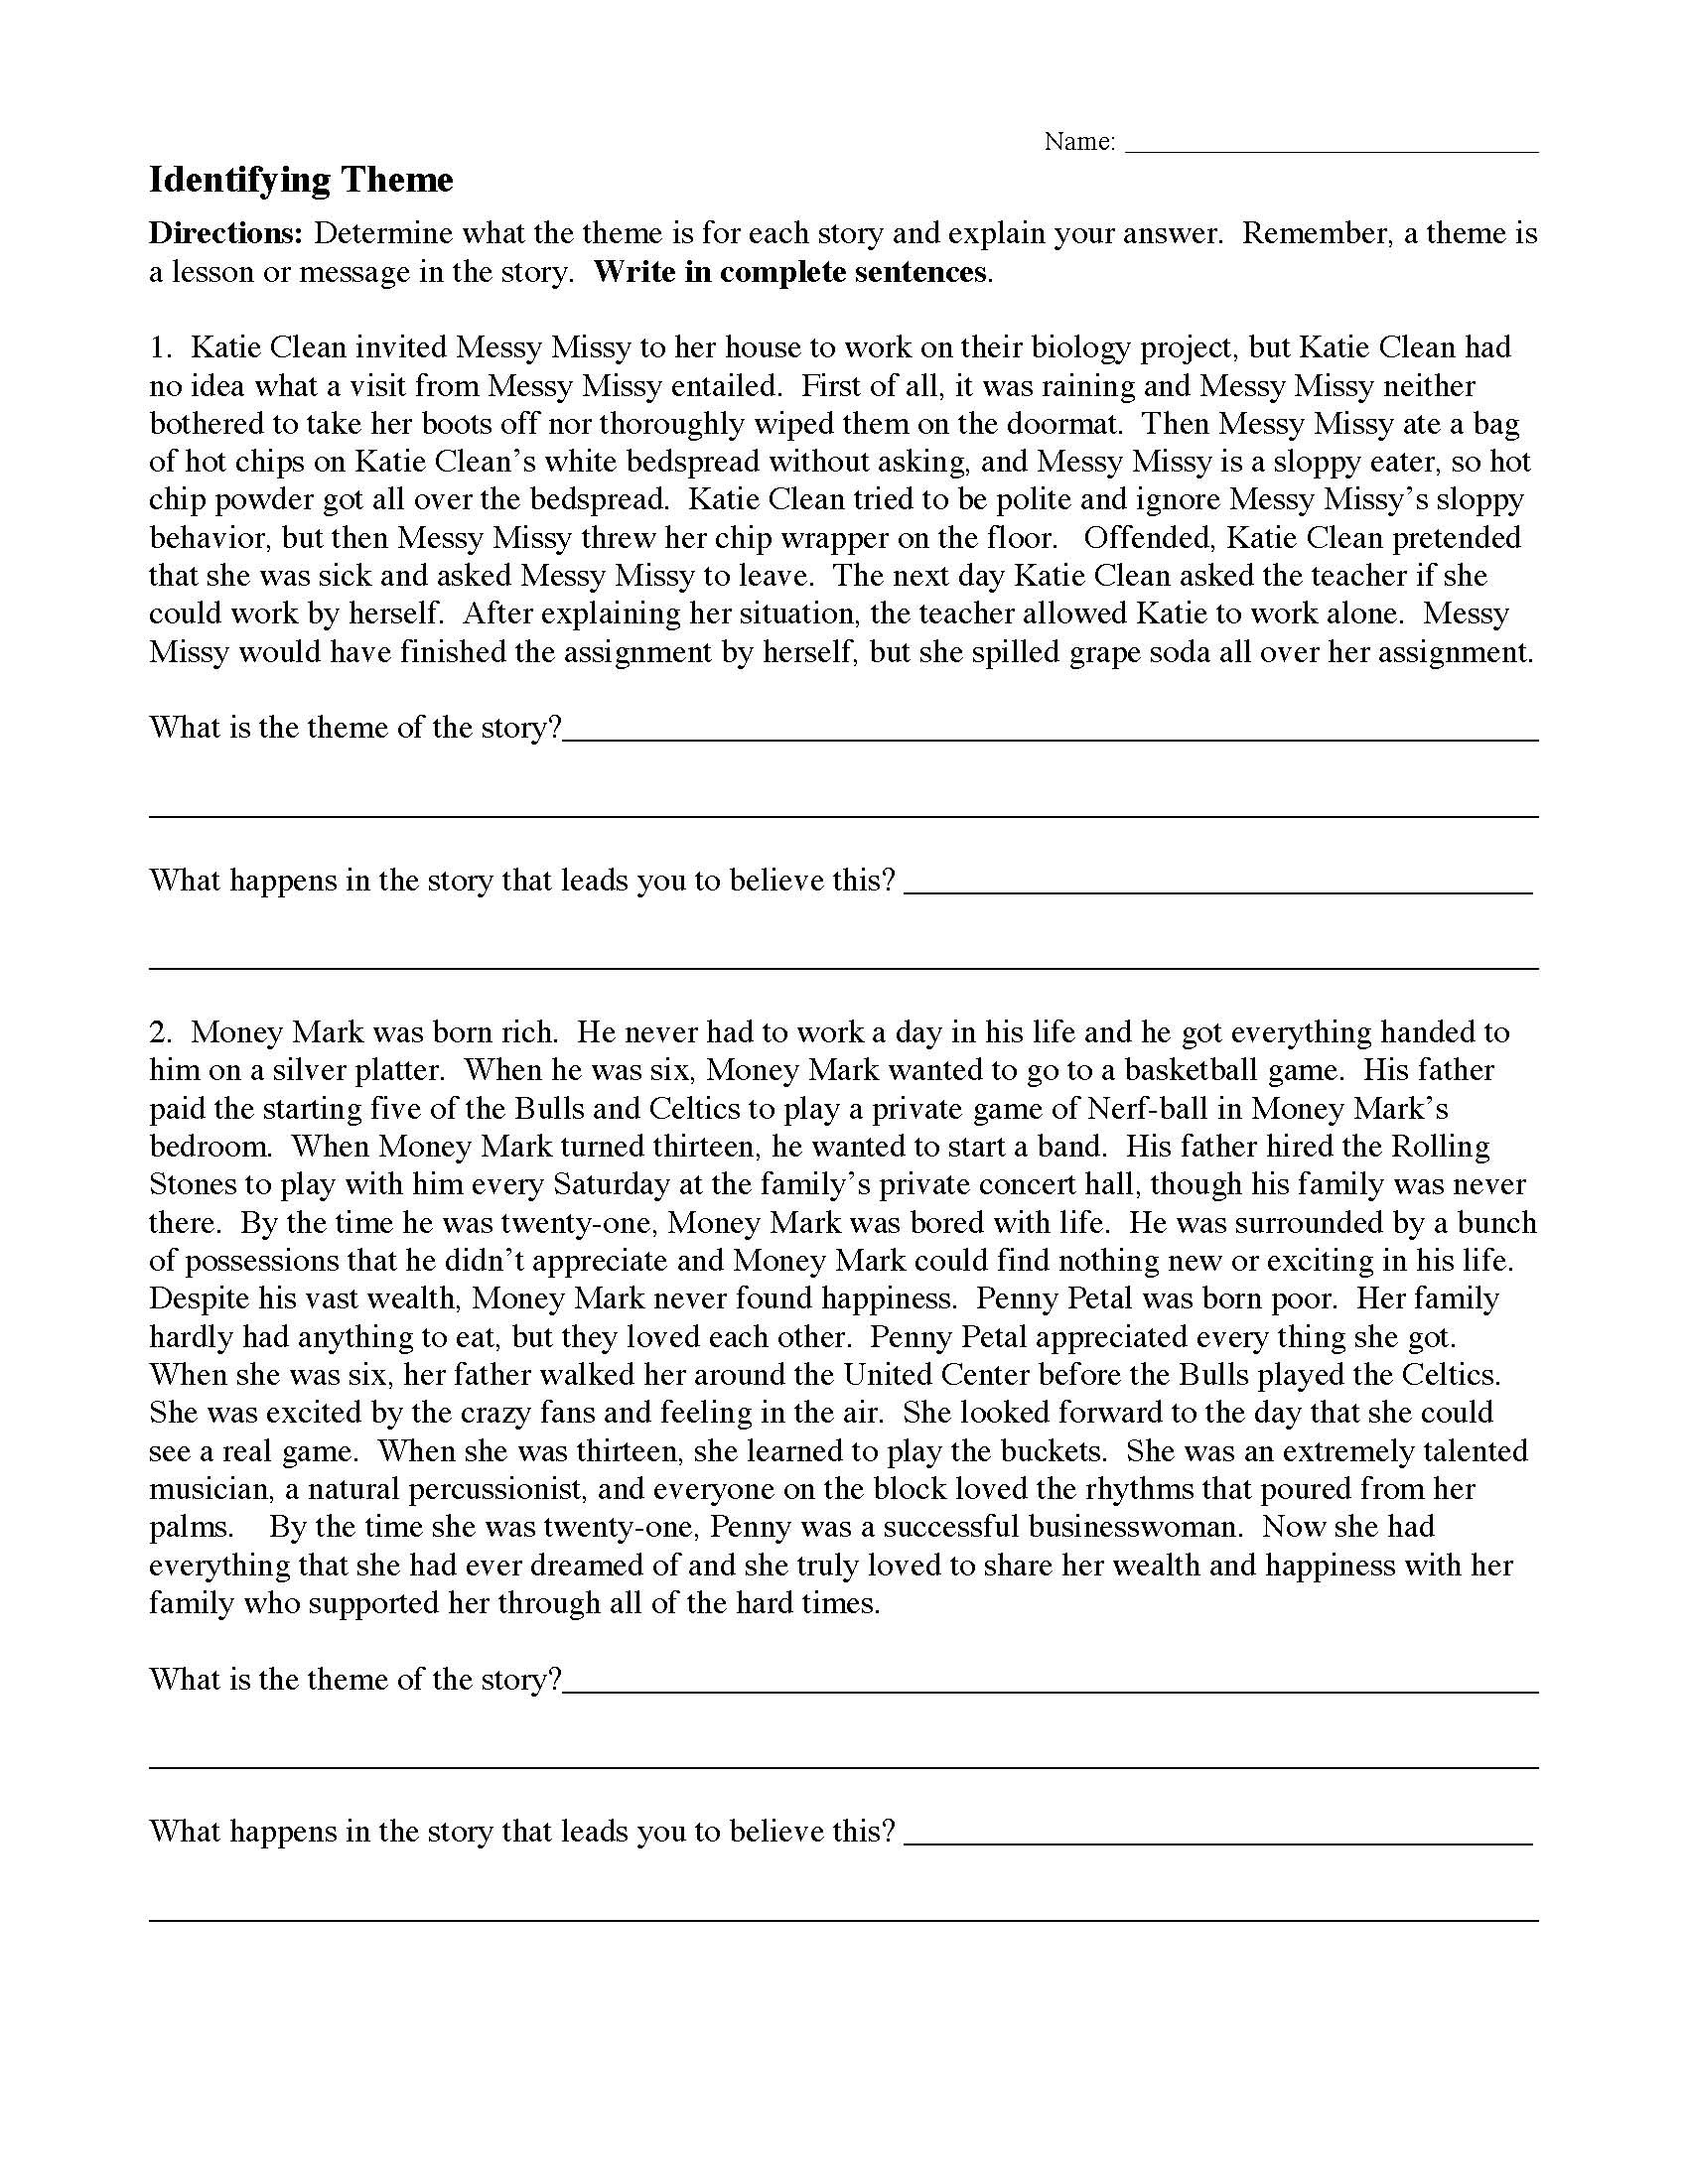 Theme Worksheets Middle School Pdf theme or Author S Message Worksheets